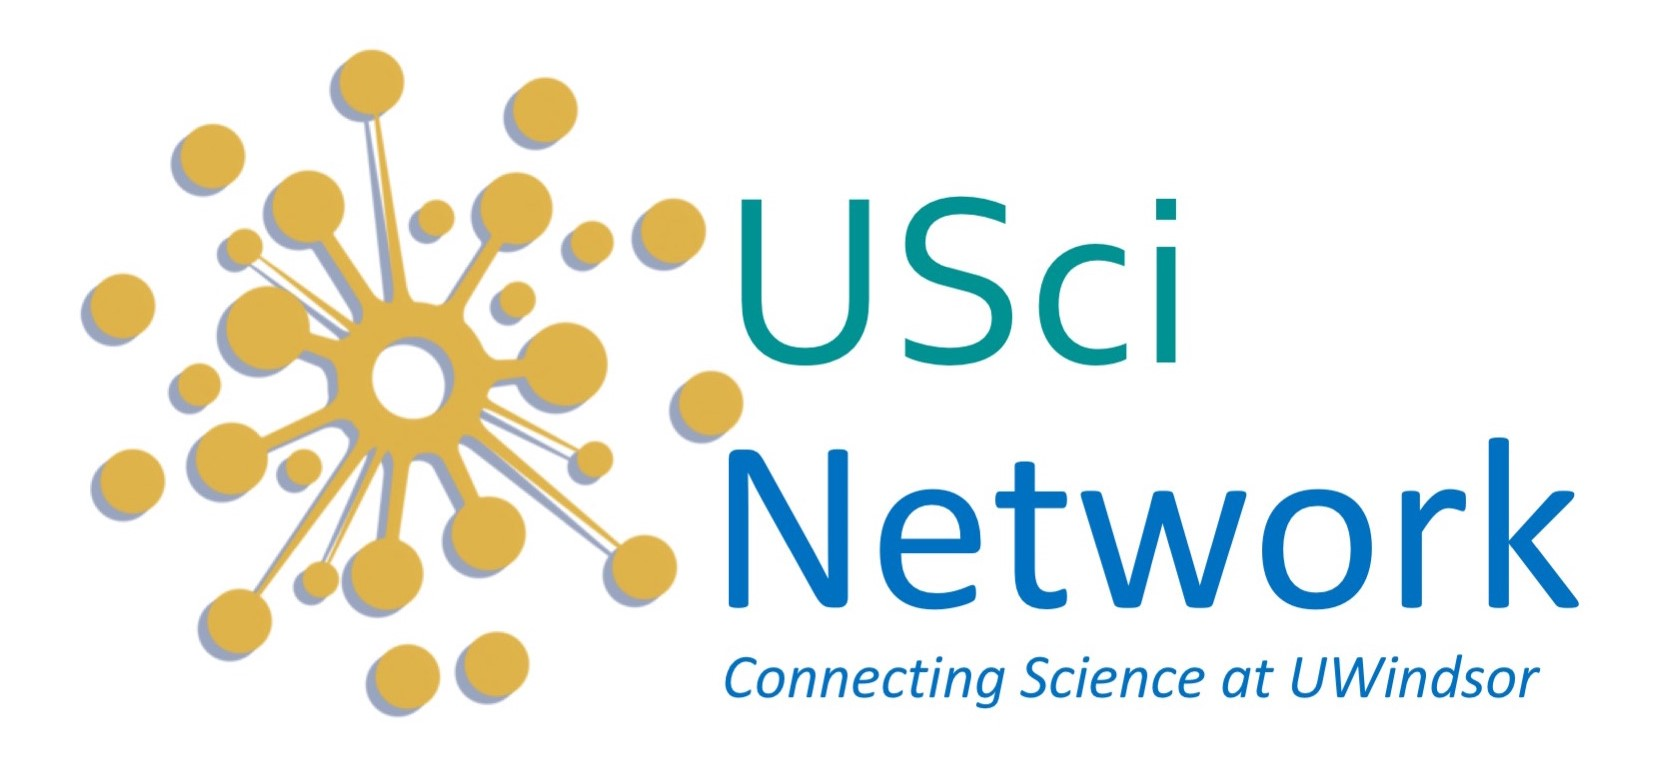 USci Network - Connecting Science at UWindsor